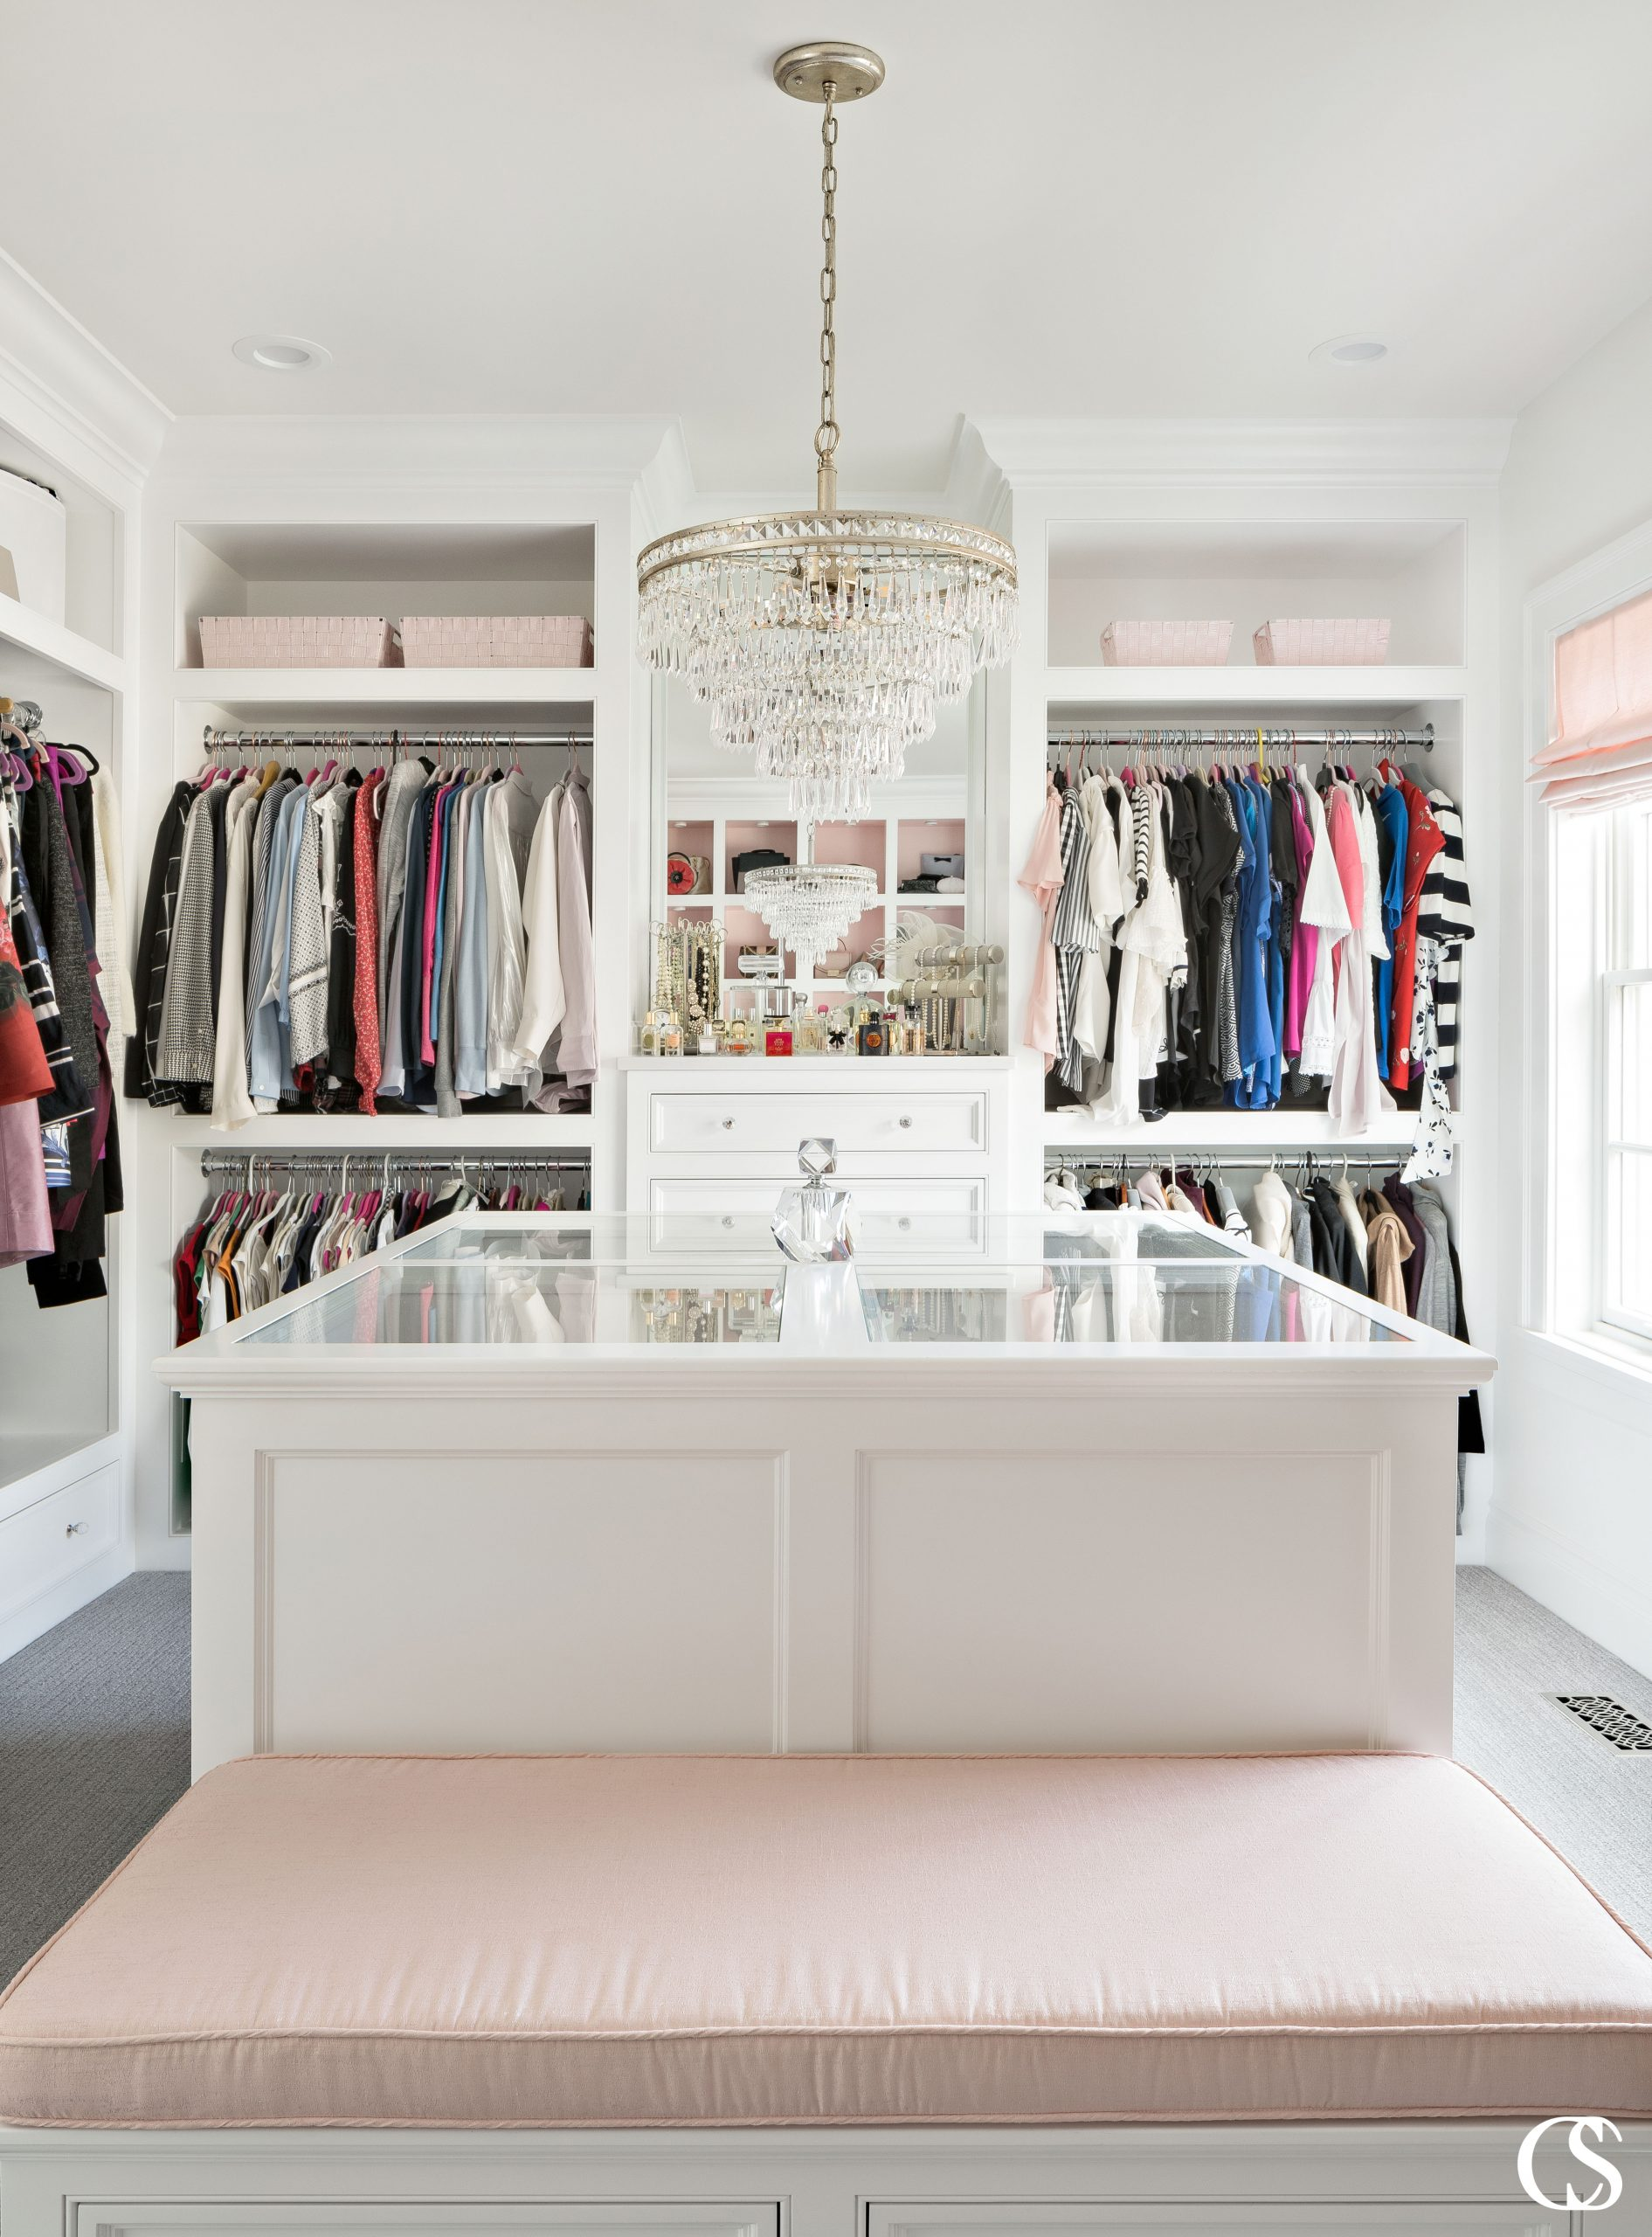 Don't you think the best custom closet design should also include space to rest? A closet should be able to pull double duty by working hard and providing privacy and peace.